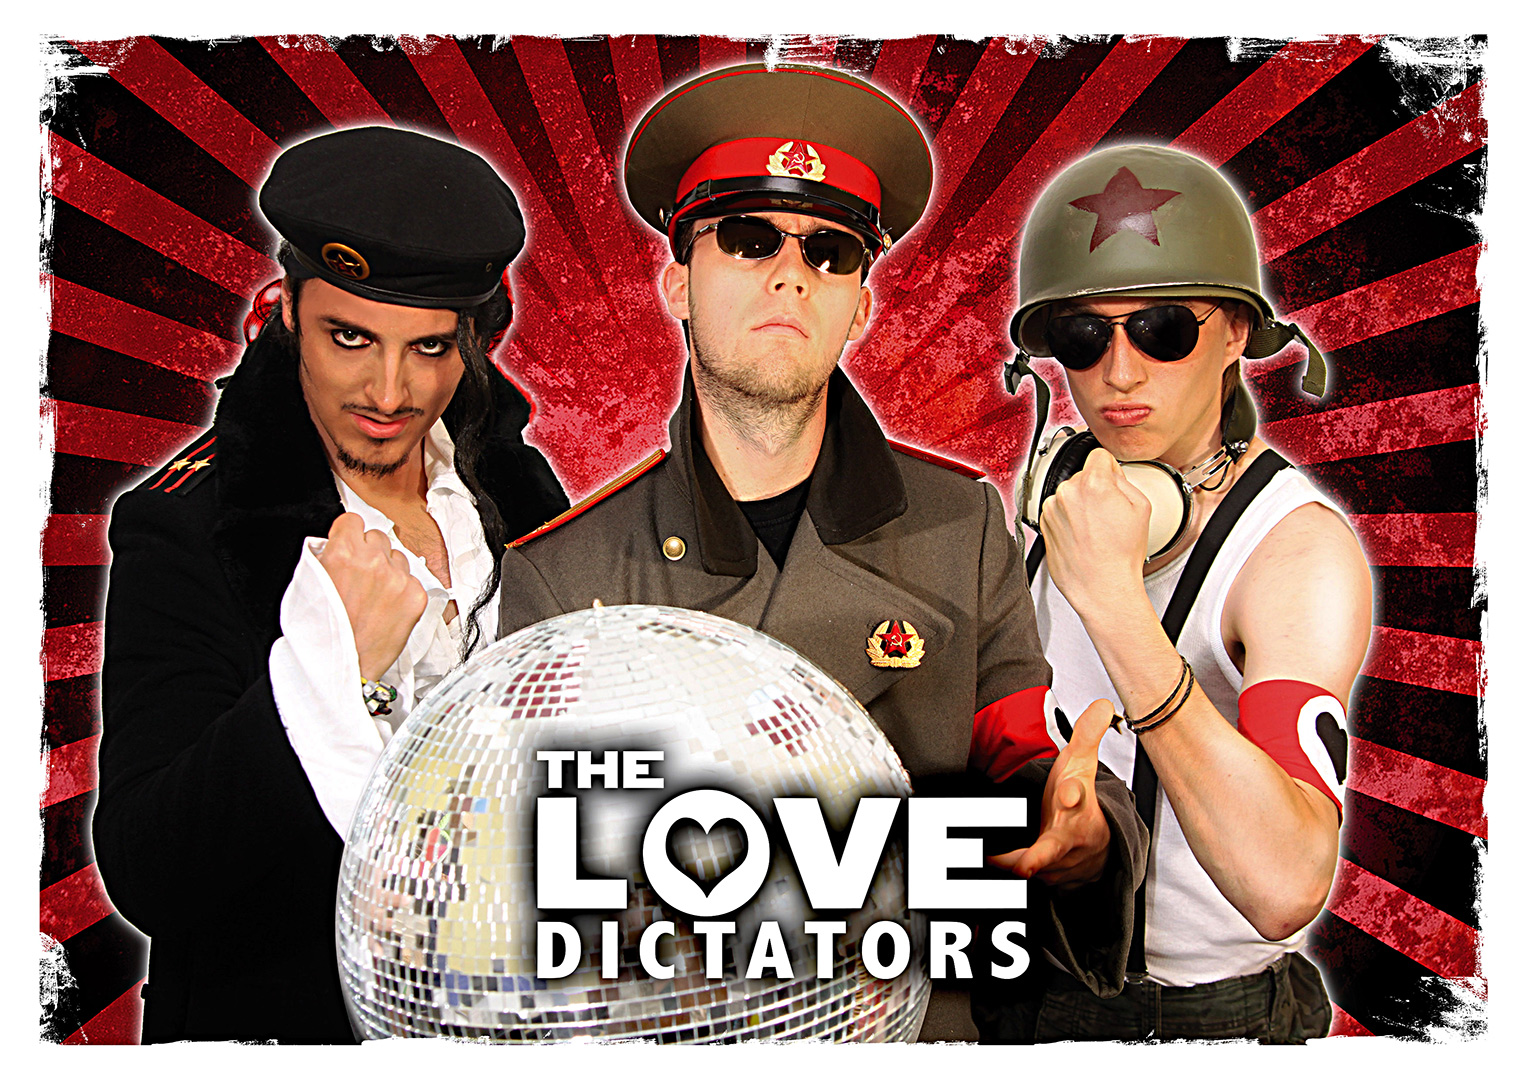 The Love Dictators DiscoBALLS Era